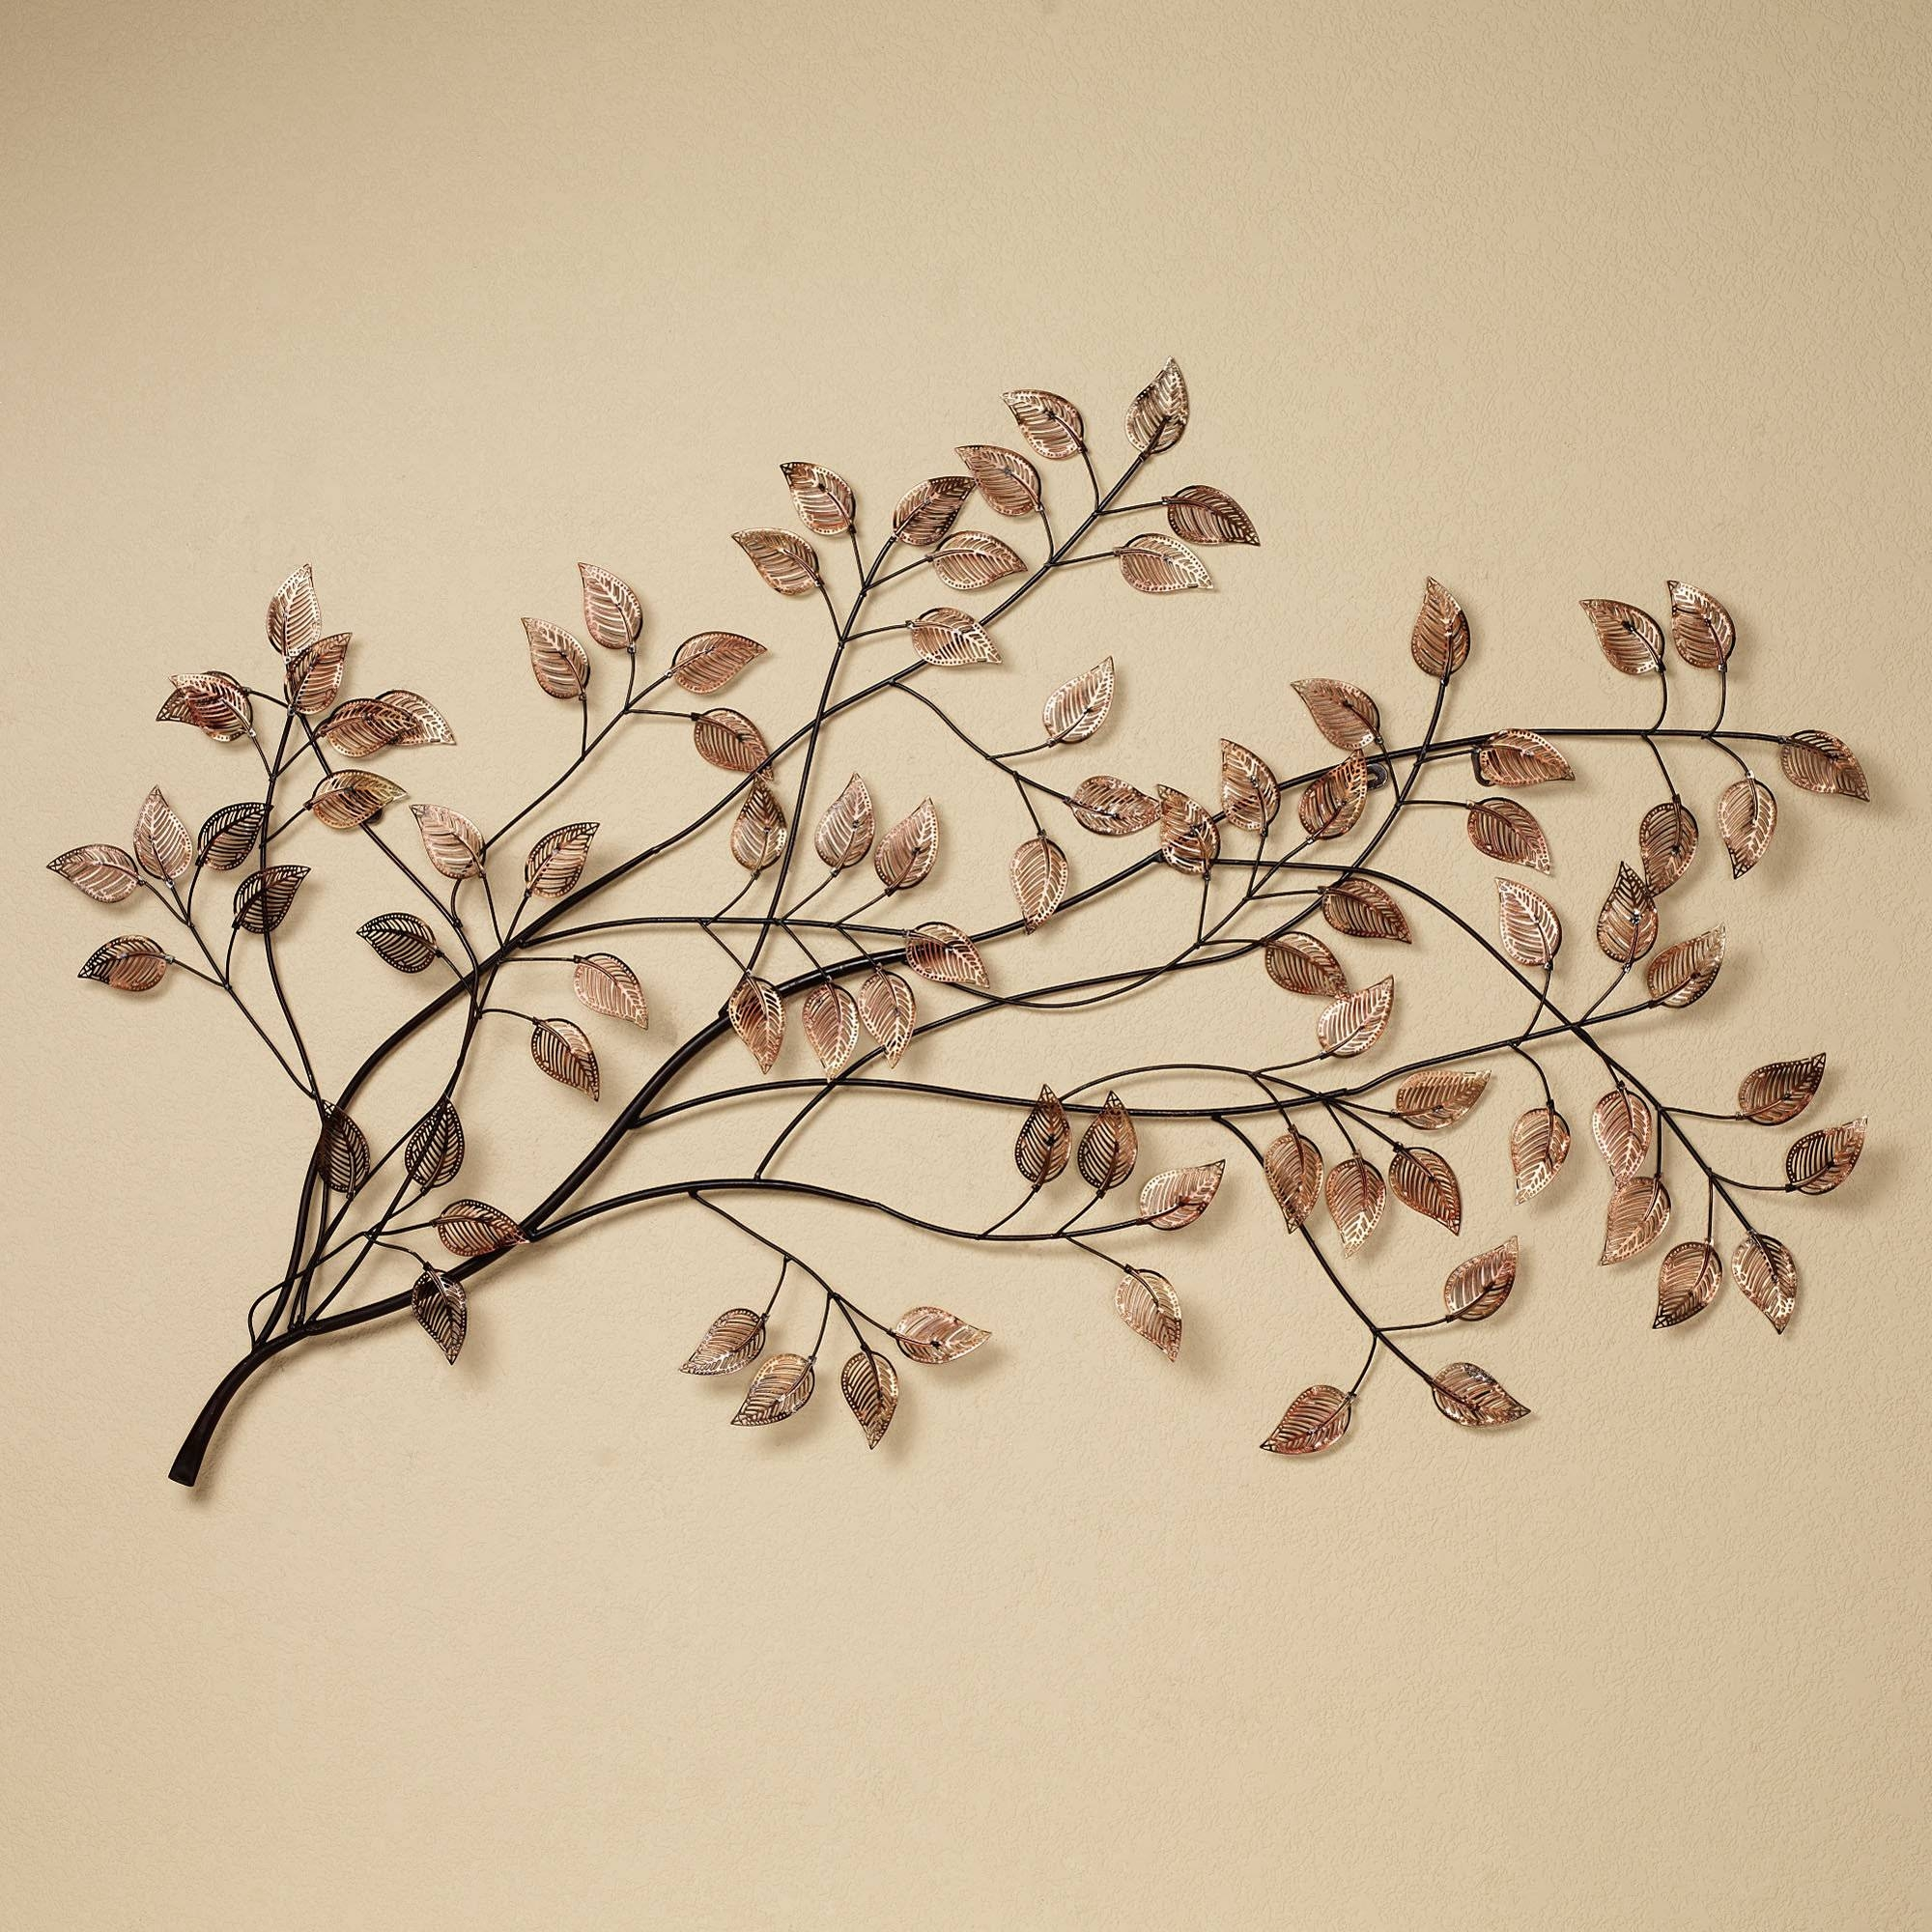 Awesome Natural Plant Design For Metal Wall Art And Decor Leaves Within Latest Leaves Metal Wall Art (View 5 of 20)